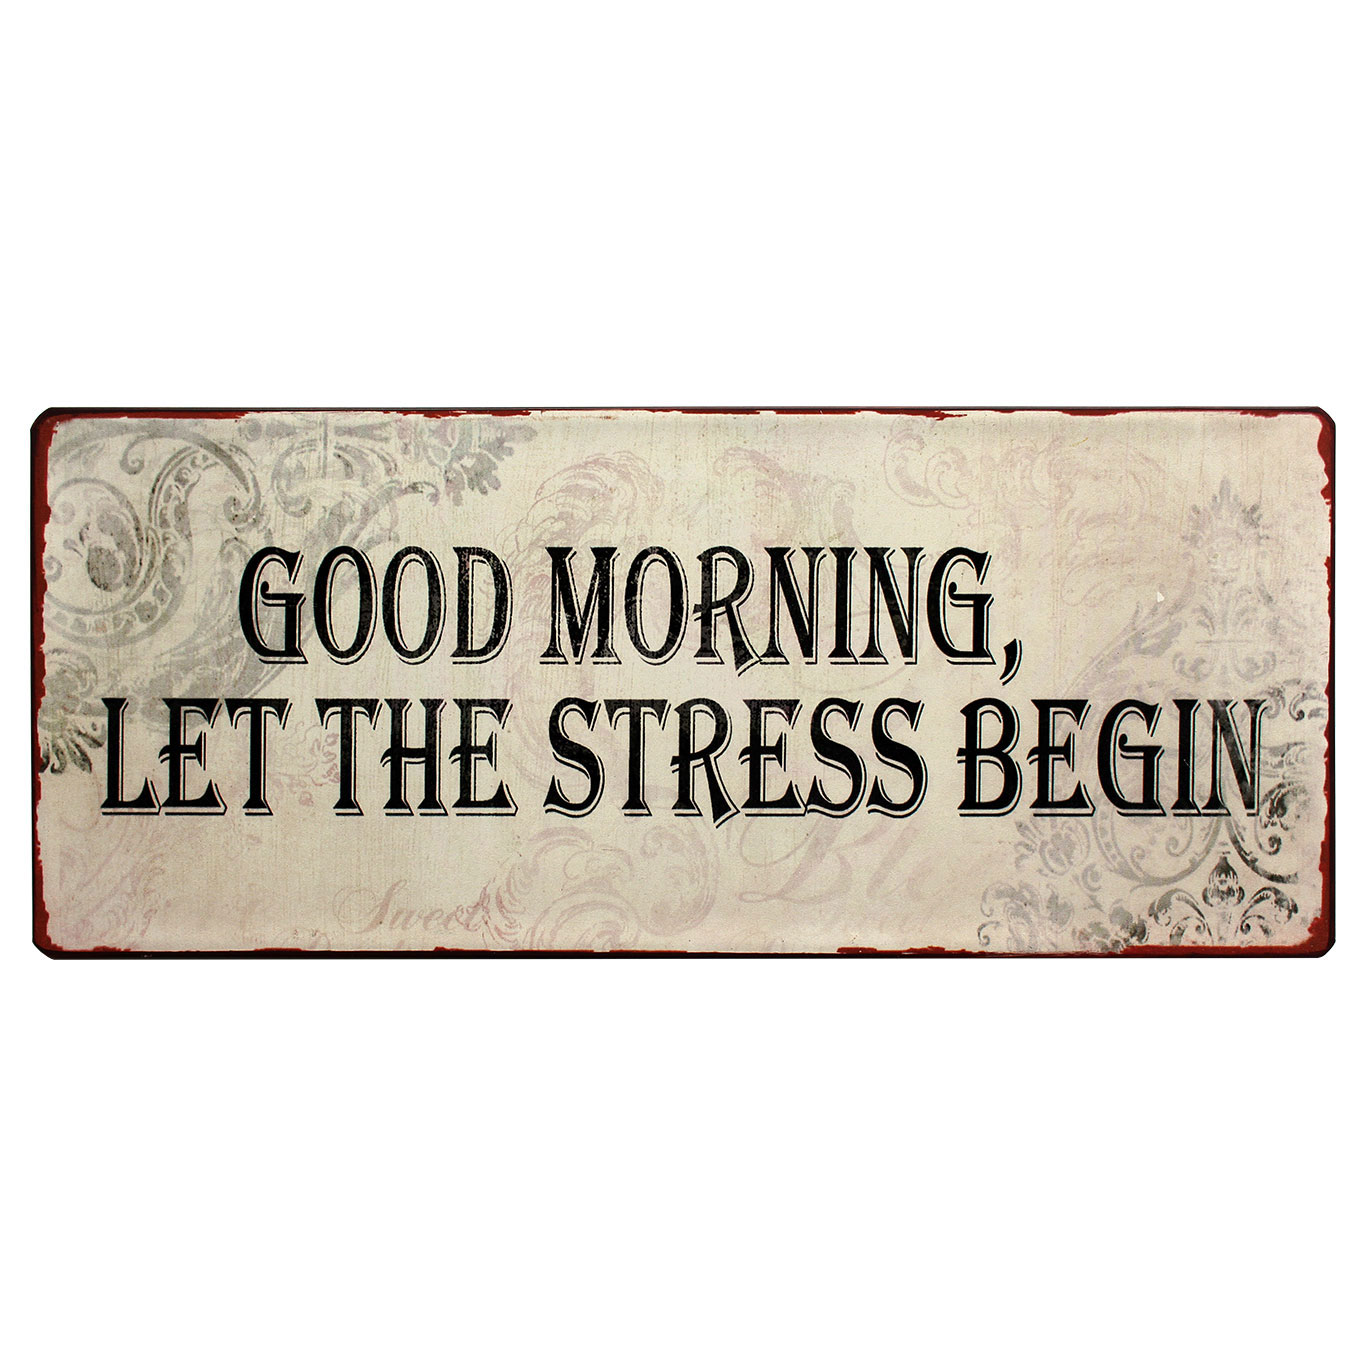 N em1369 good morning let the tress begin spreukenbord tekstbord uitspraken gezegde spreuken rustiek bord cadeau